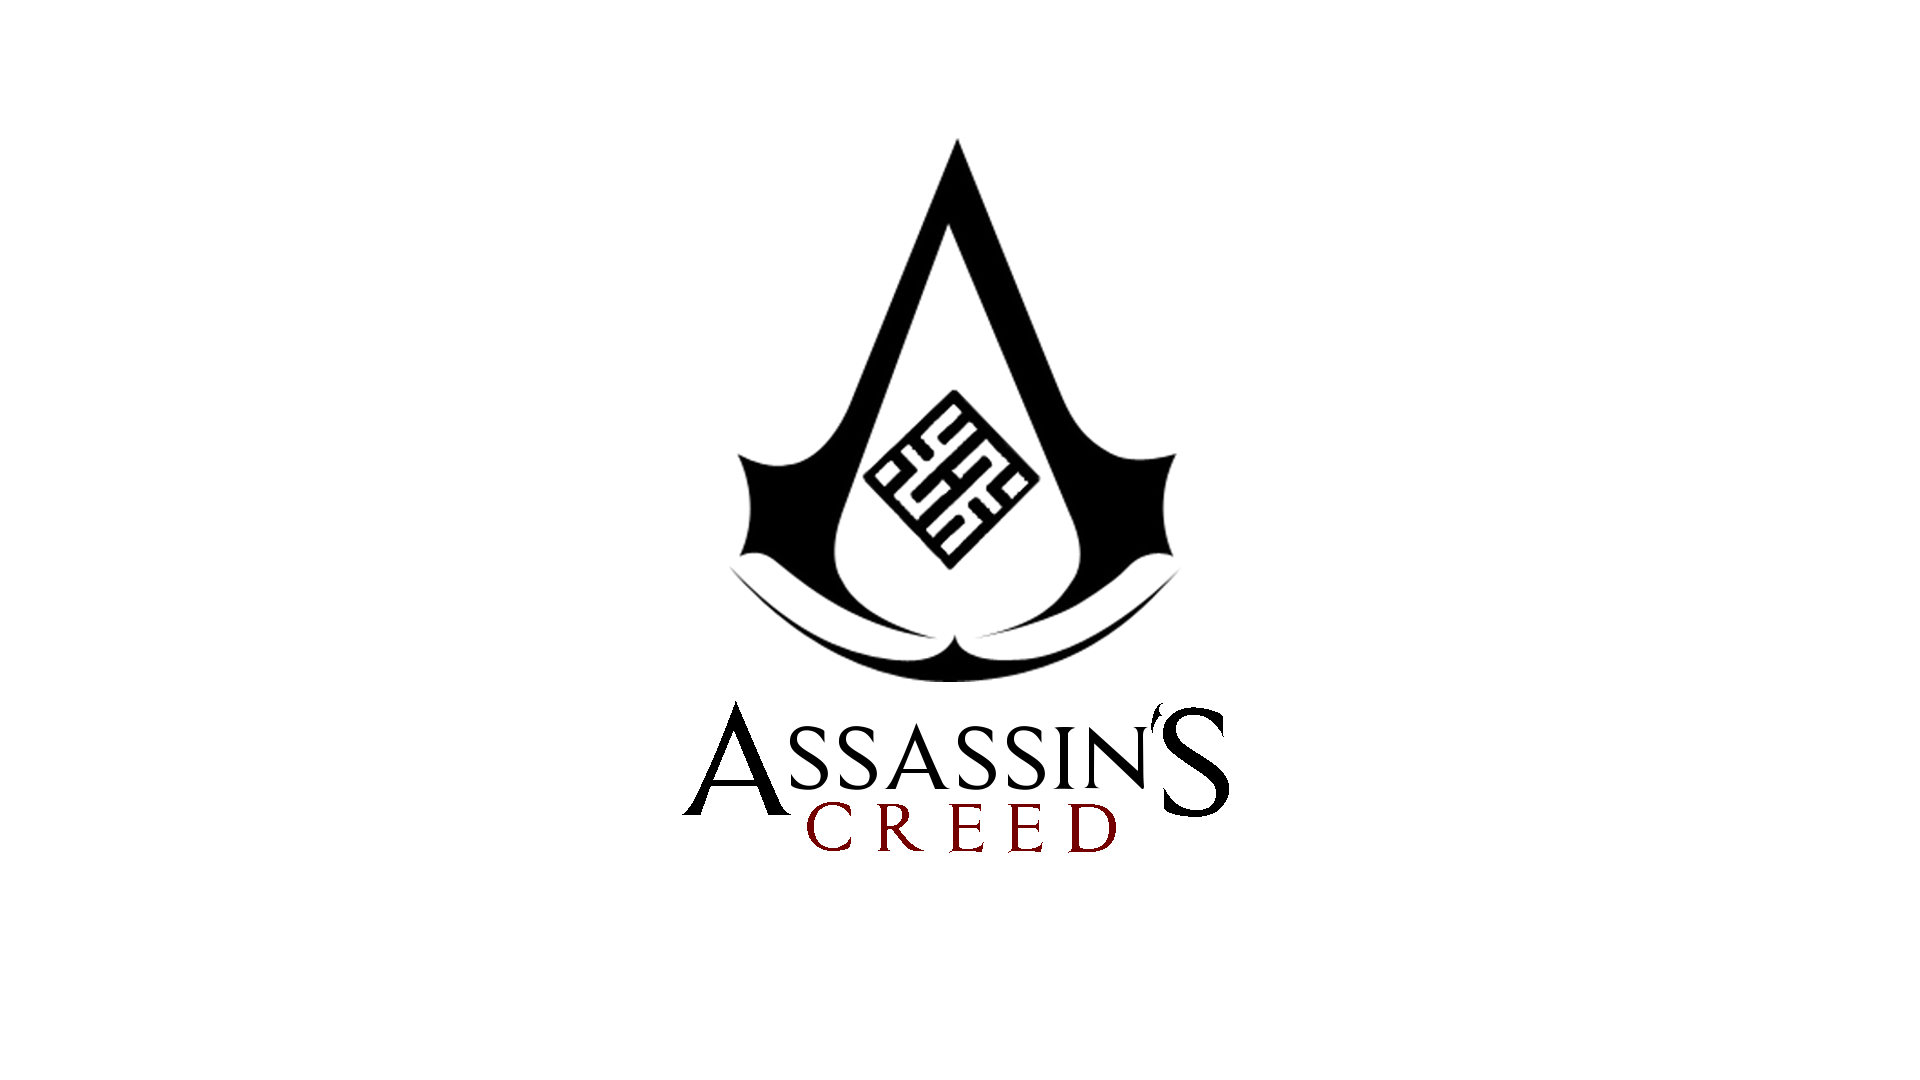 Assassin S Creed Simple Wallpaper By Thejackmoriarty On Deviantart